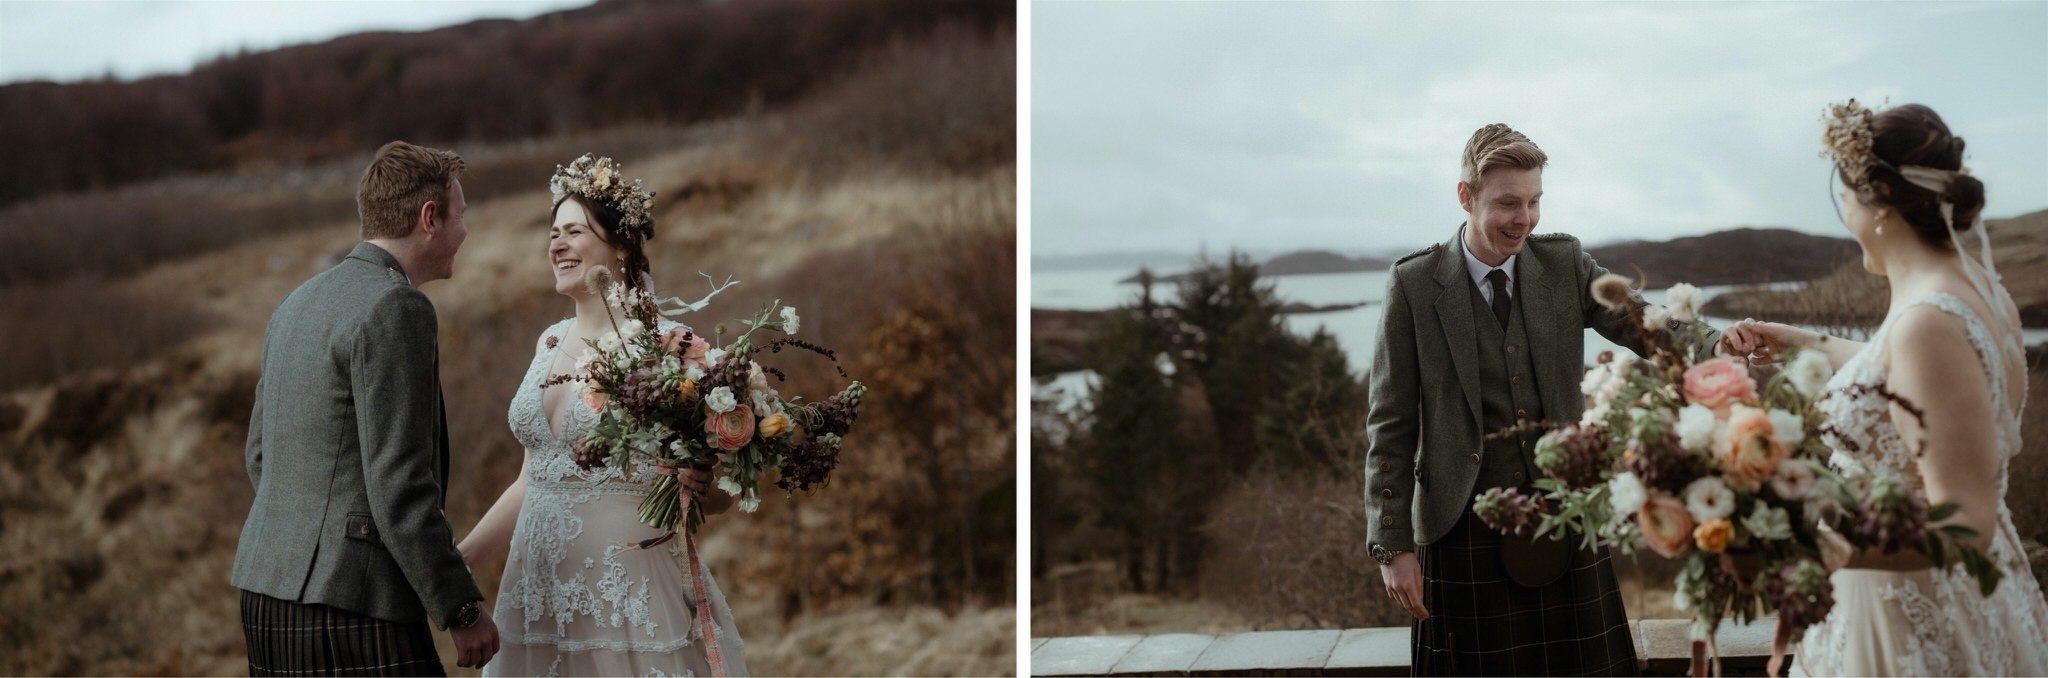 Groom's reaction to seeing his bride for the first time during their Assynt elopement wedding in Scotland